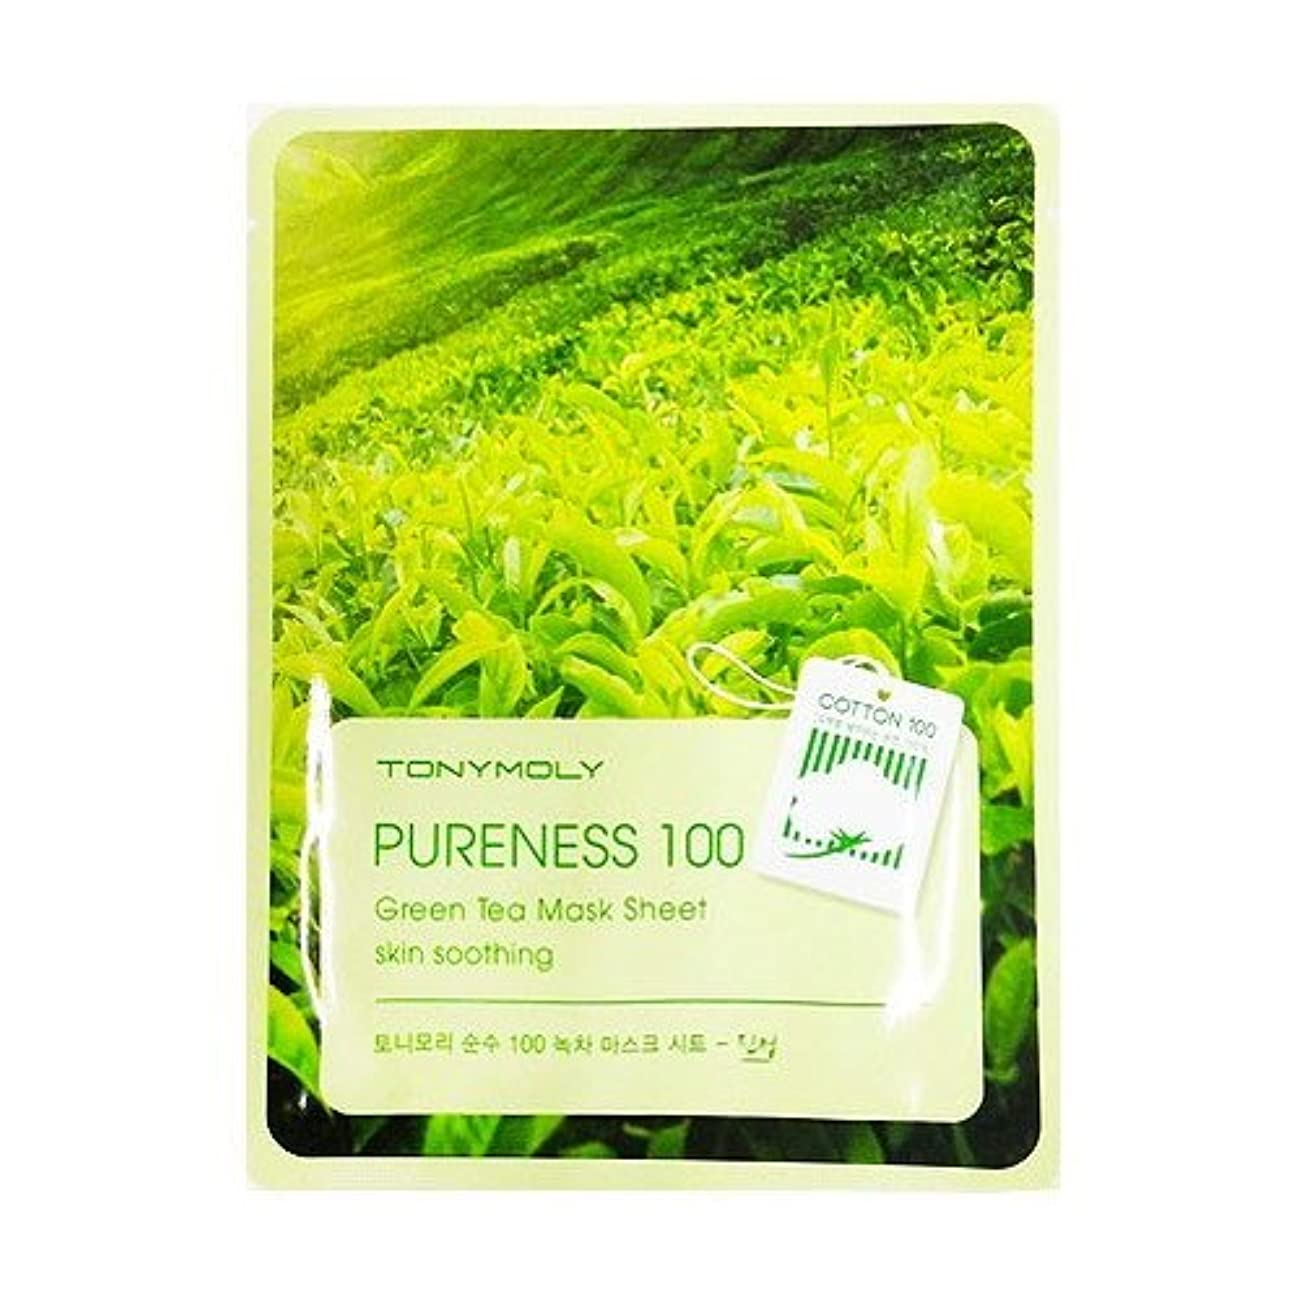 降ろす身元明示的に(3 Pack) TONYMOLY Pureness 100 Green Tea Mask Sheet Skin Soothing (並行輸入品)